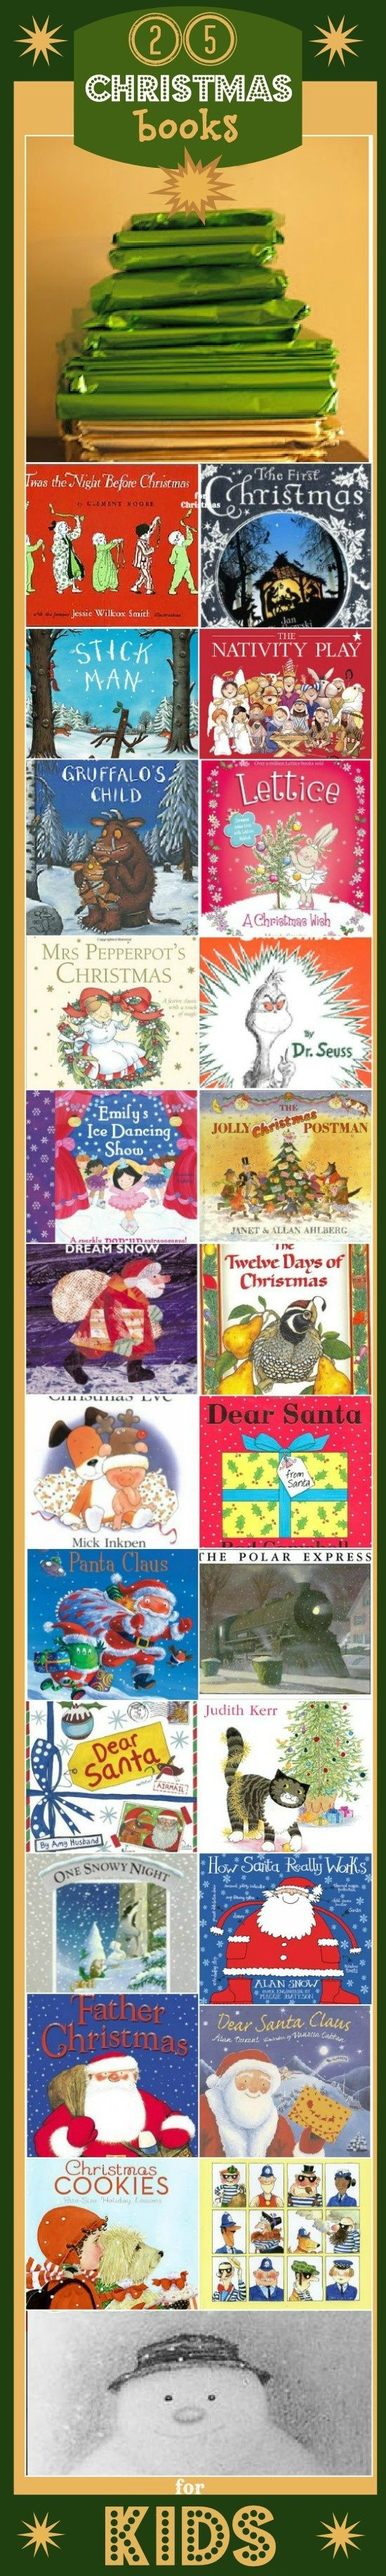 25 CHRISTMAS books for kids. Perfect for ADVENT: create a FUN alternative advent countdown with a festive book every day..